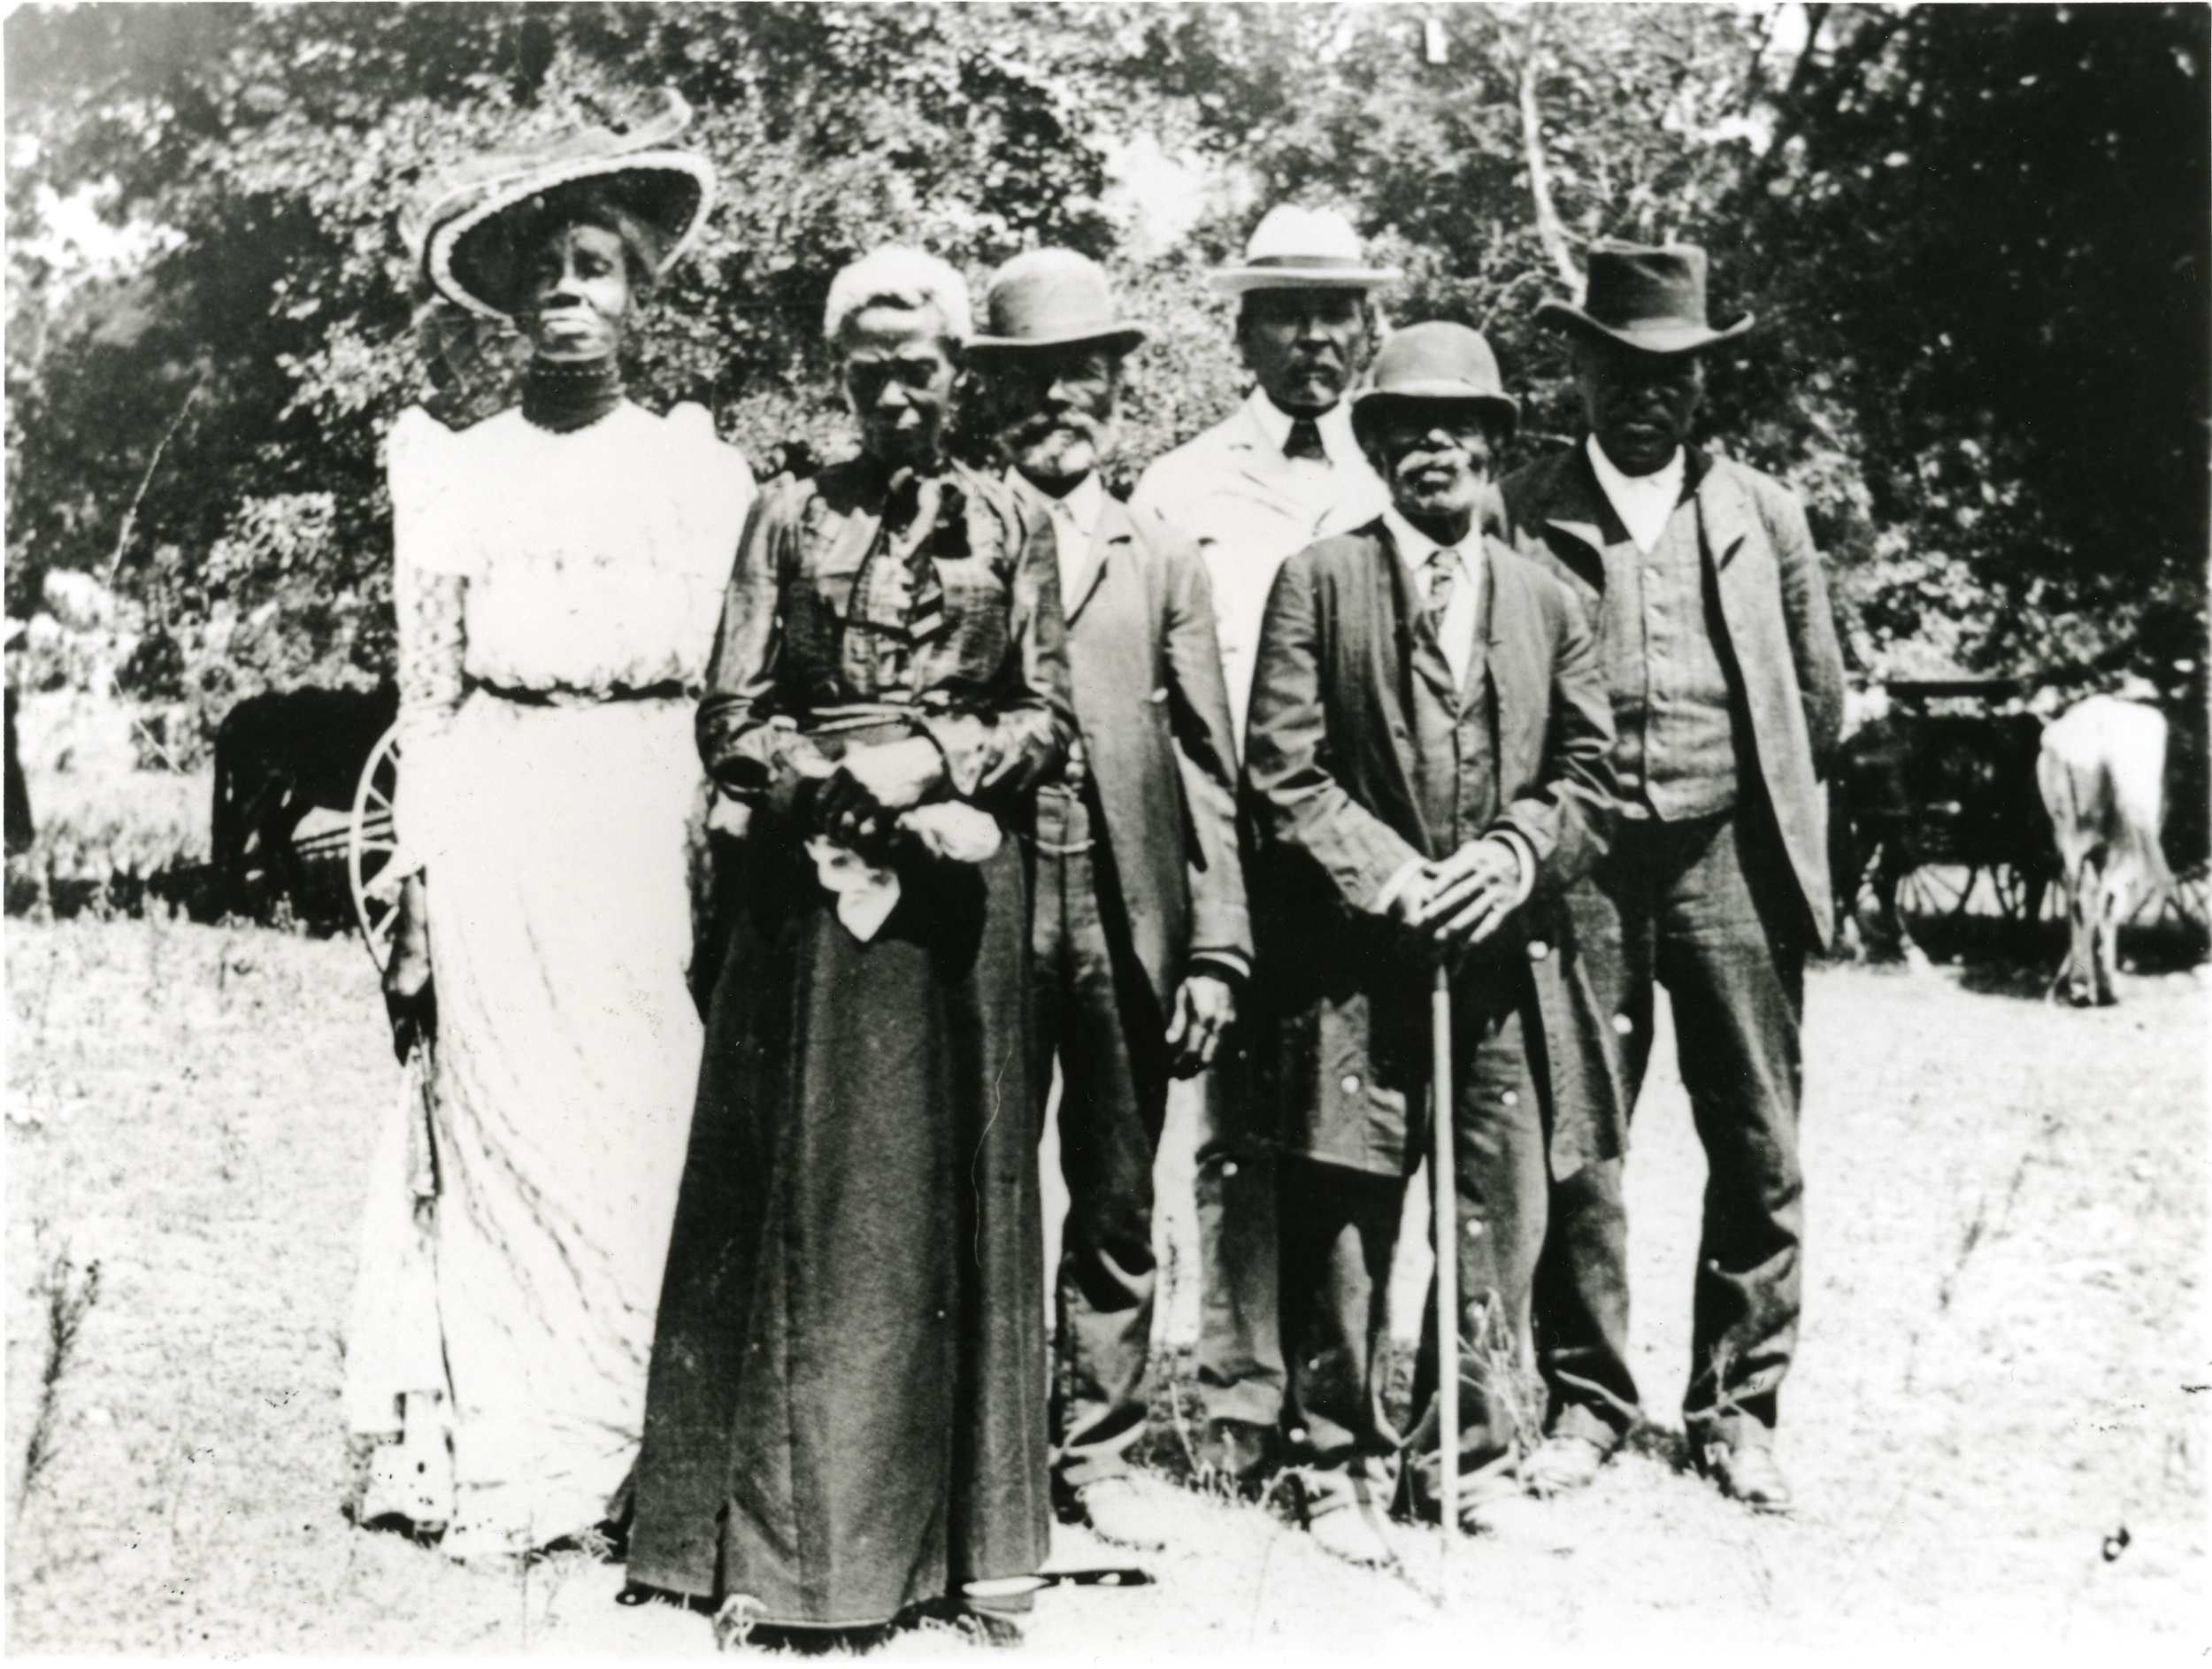 This photo, taken in Austin in 1900, is from a Smithsonian magazine article on early celebrations of Juneteenth.  http://www.smithsonianmag.com/smithsonian-institution/juneteenth-a-new-birth-of-freedom-9572263/?no-ist